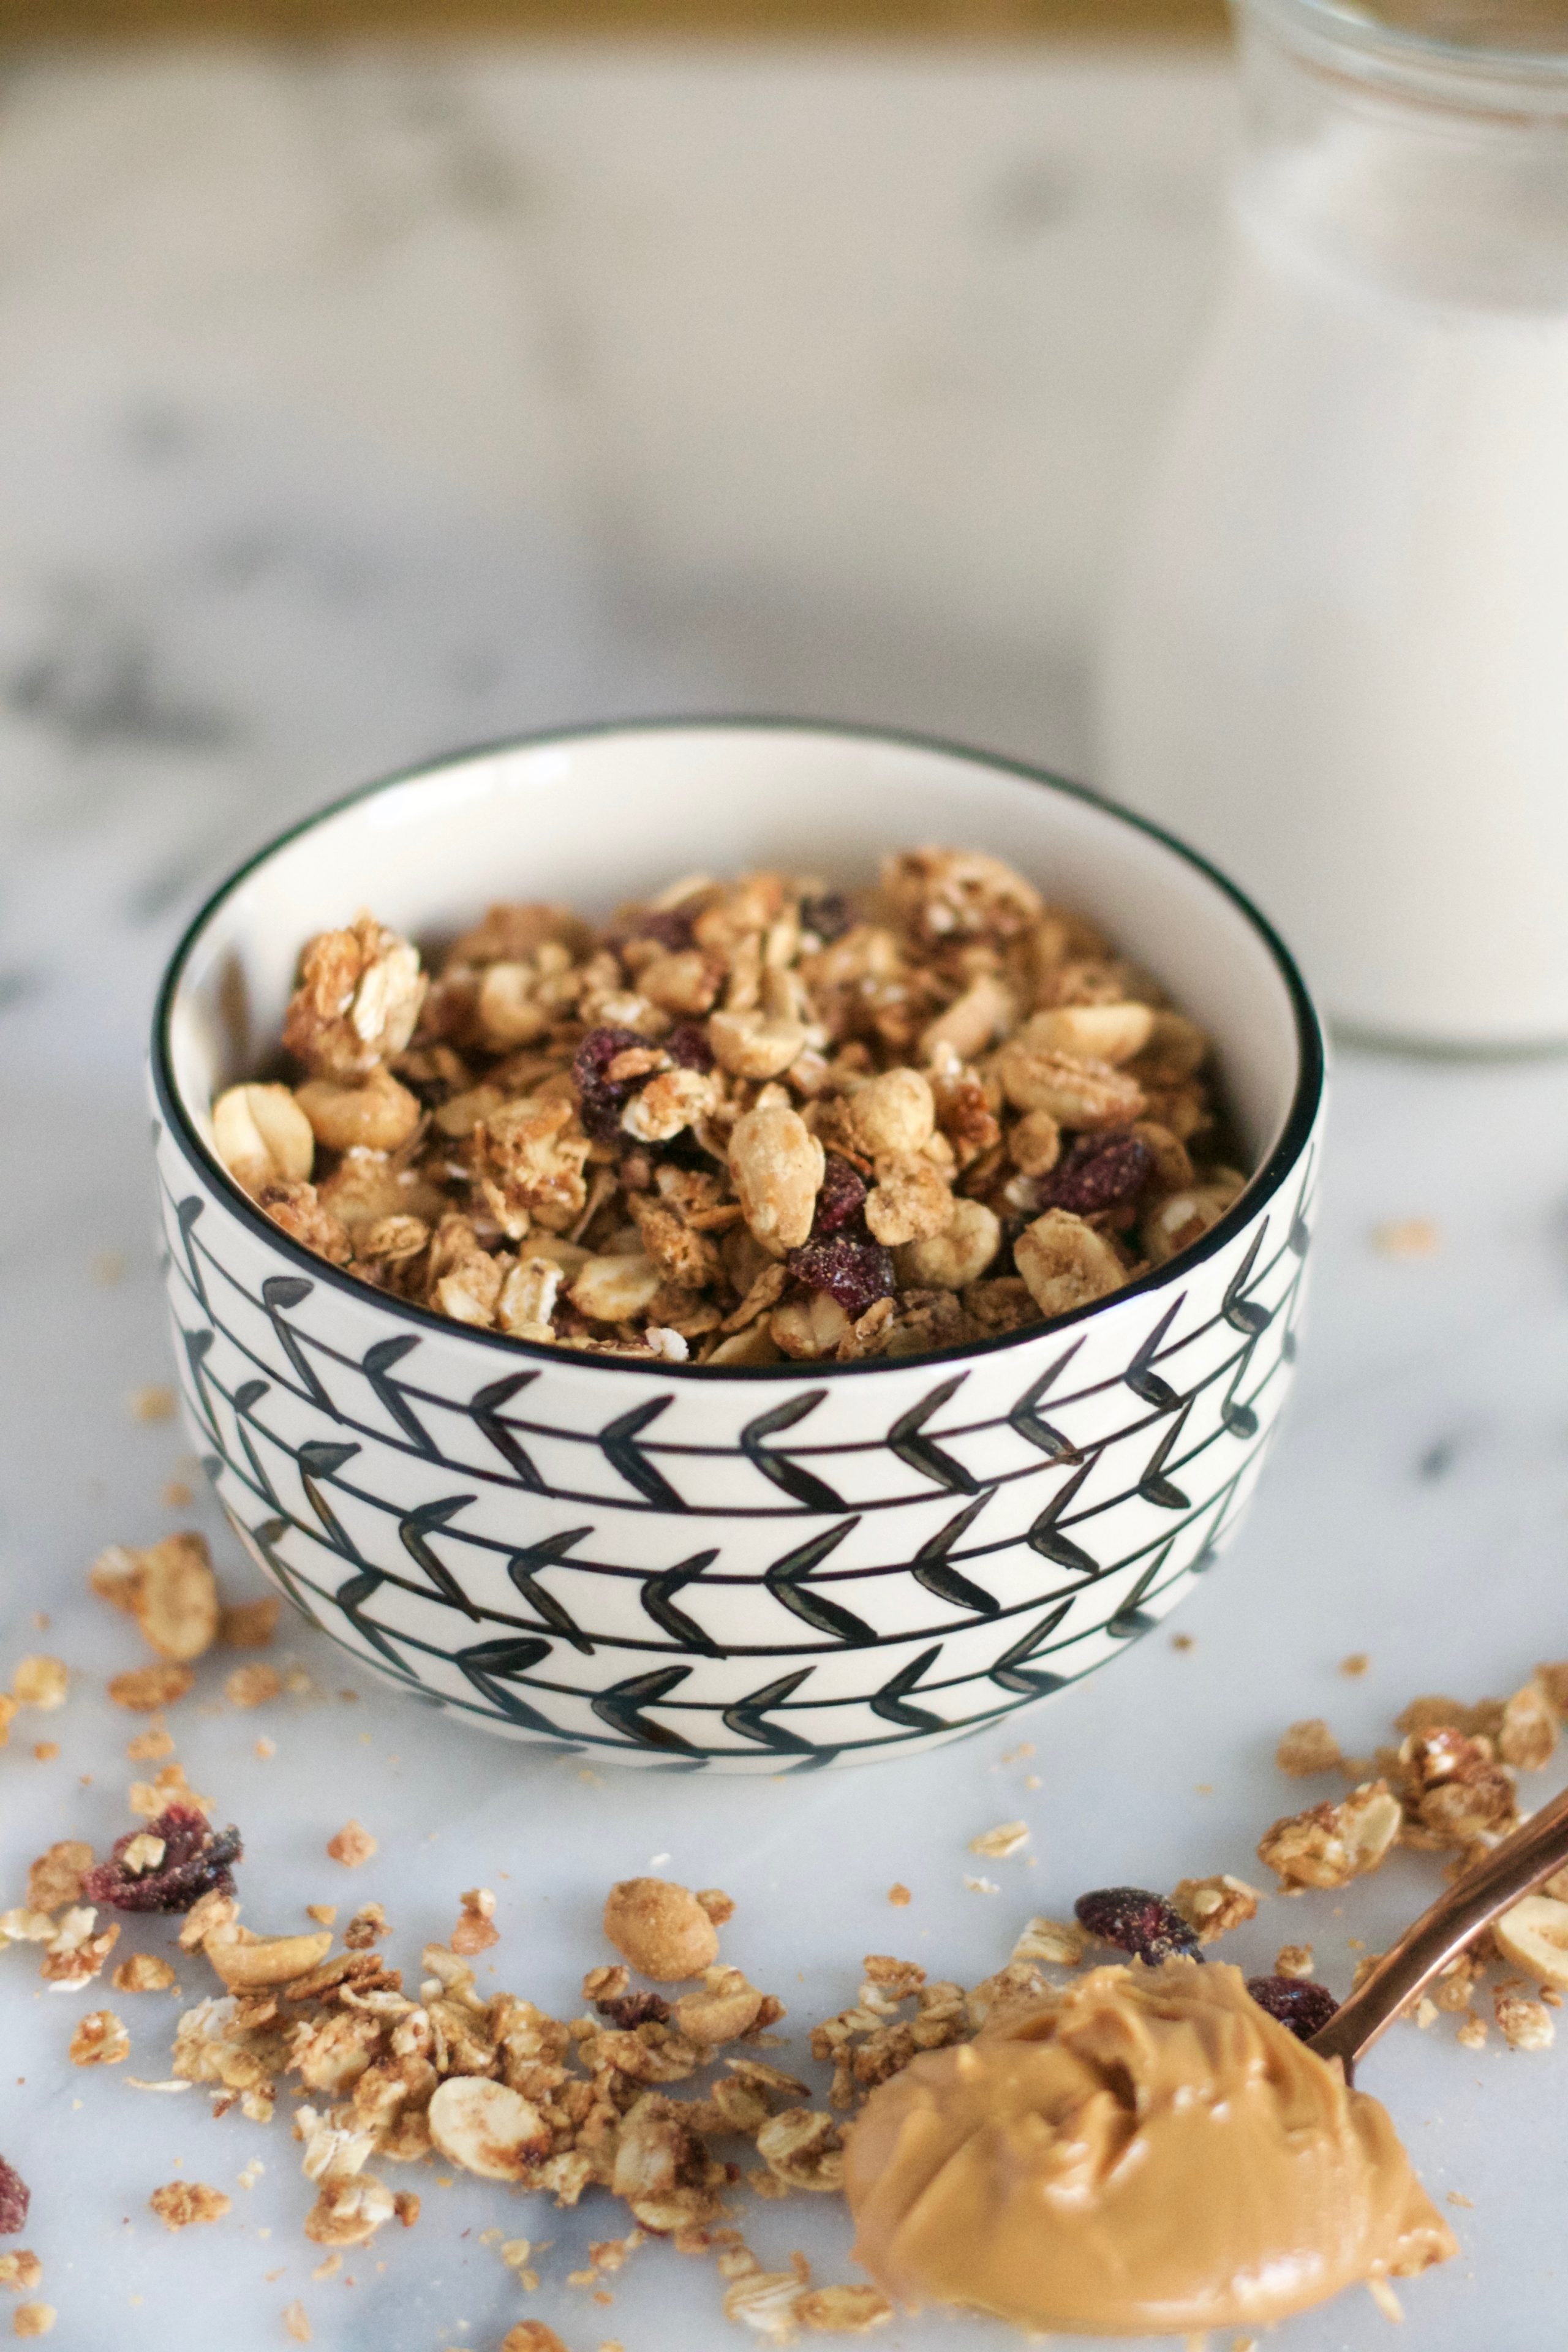 Peanut Butter and Jelly Granola (GF, DF, V) - A Dash of Megnut